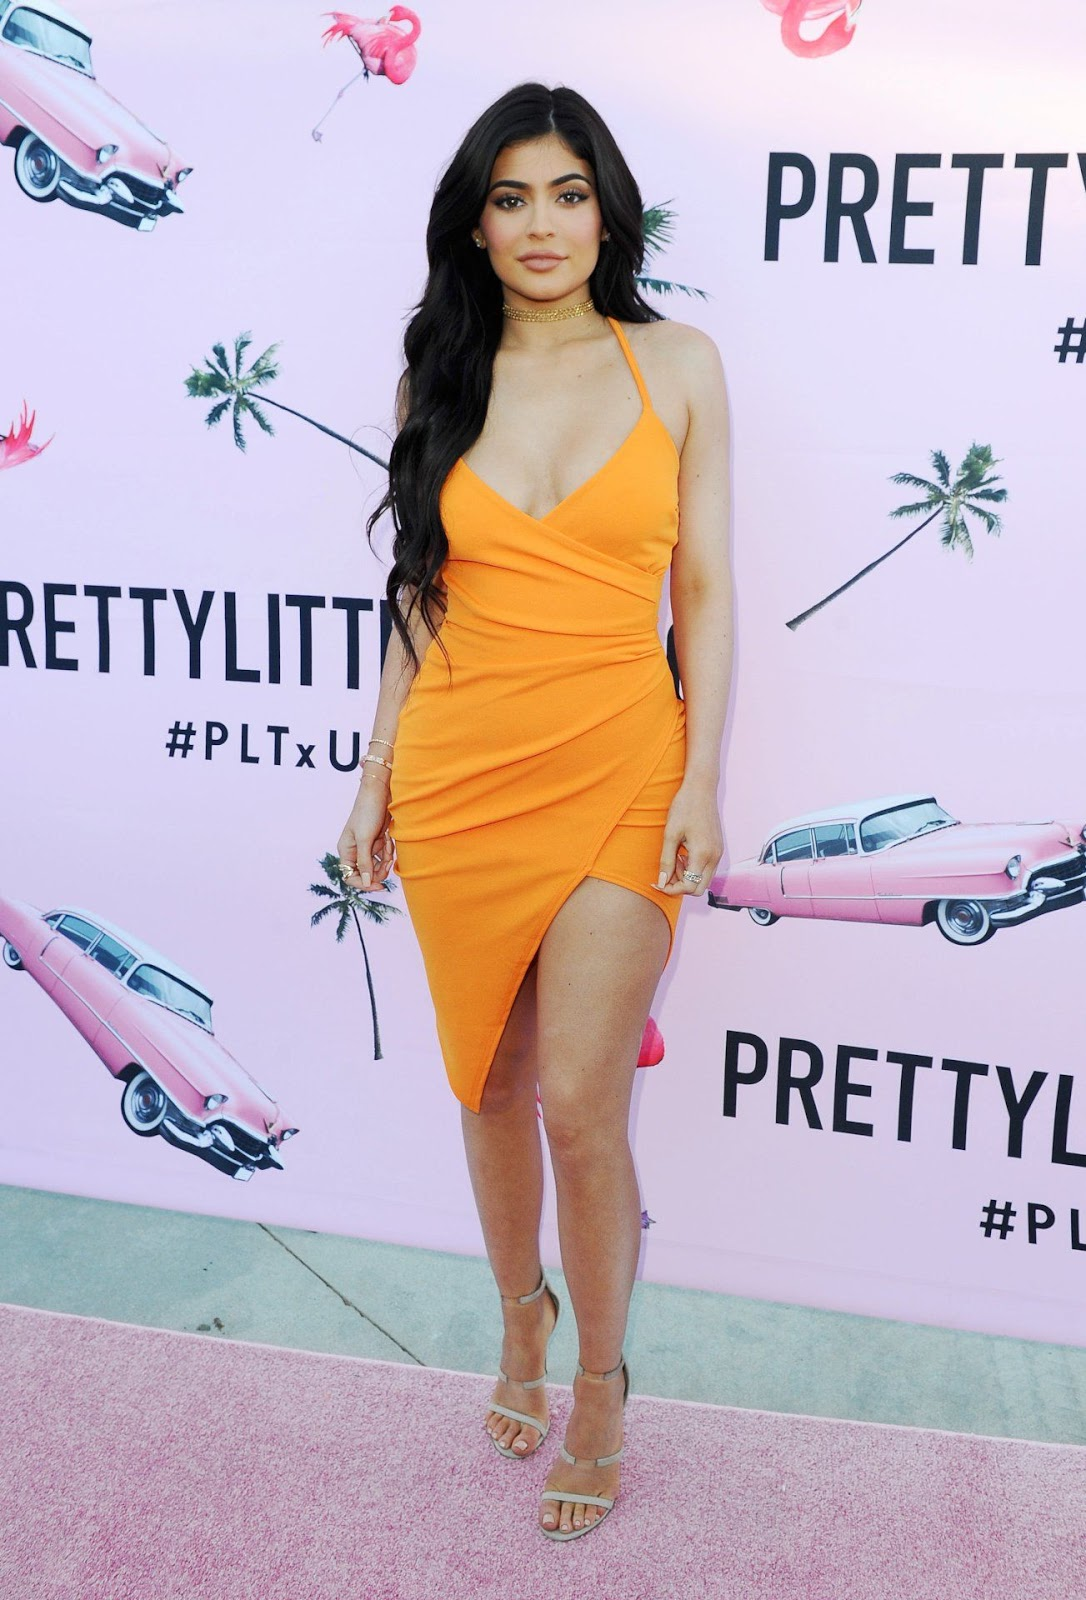 Kylie Jenner flaunts curves at the PrettyLittleThing US launch in LA